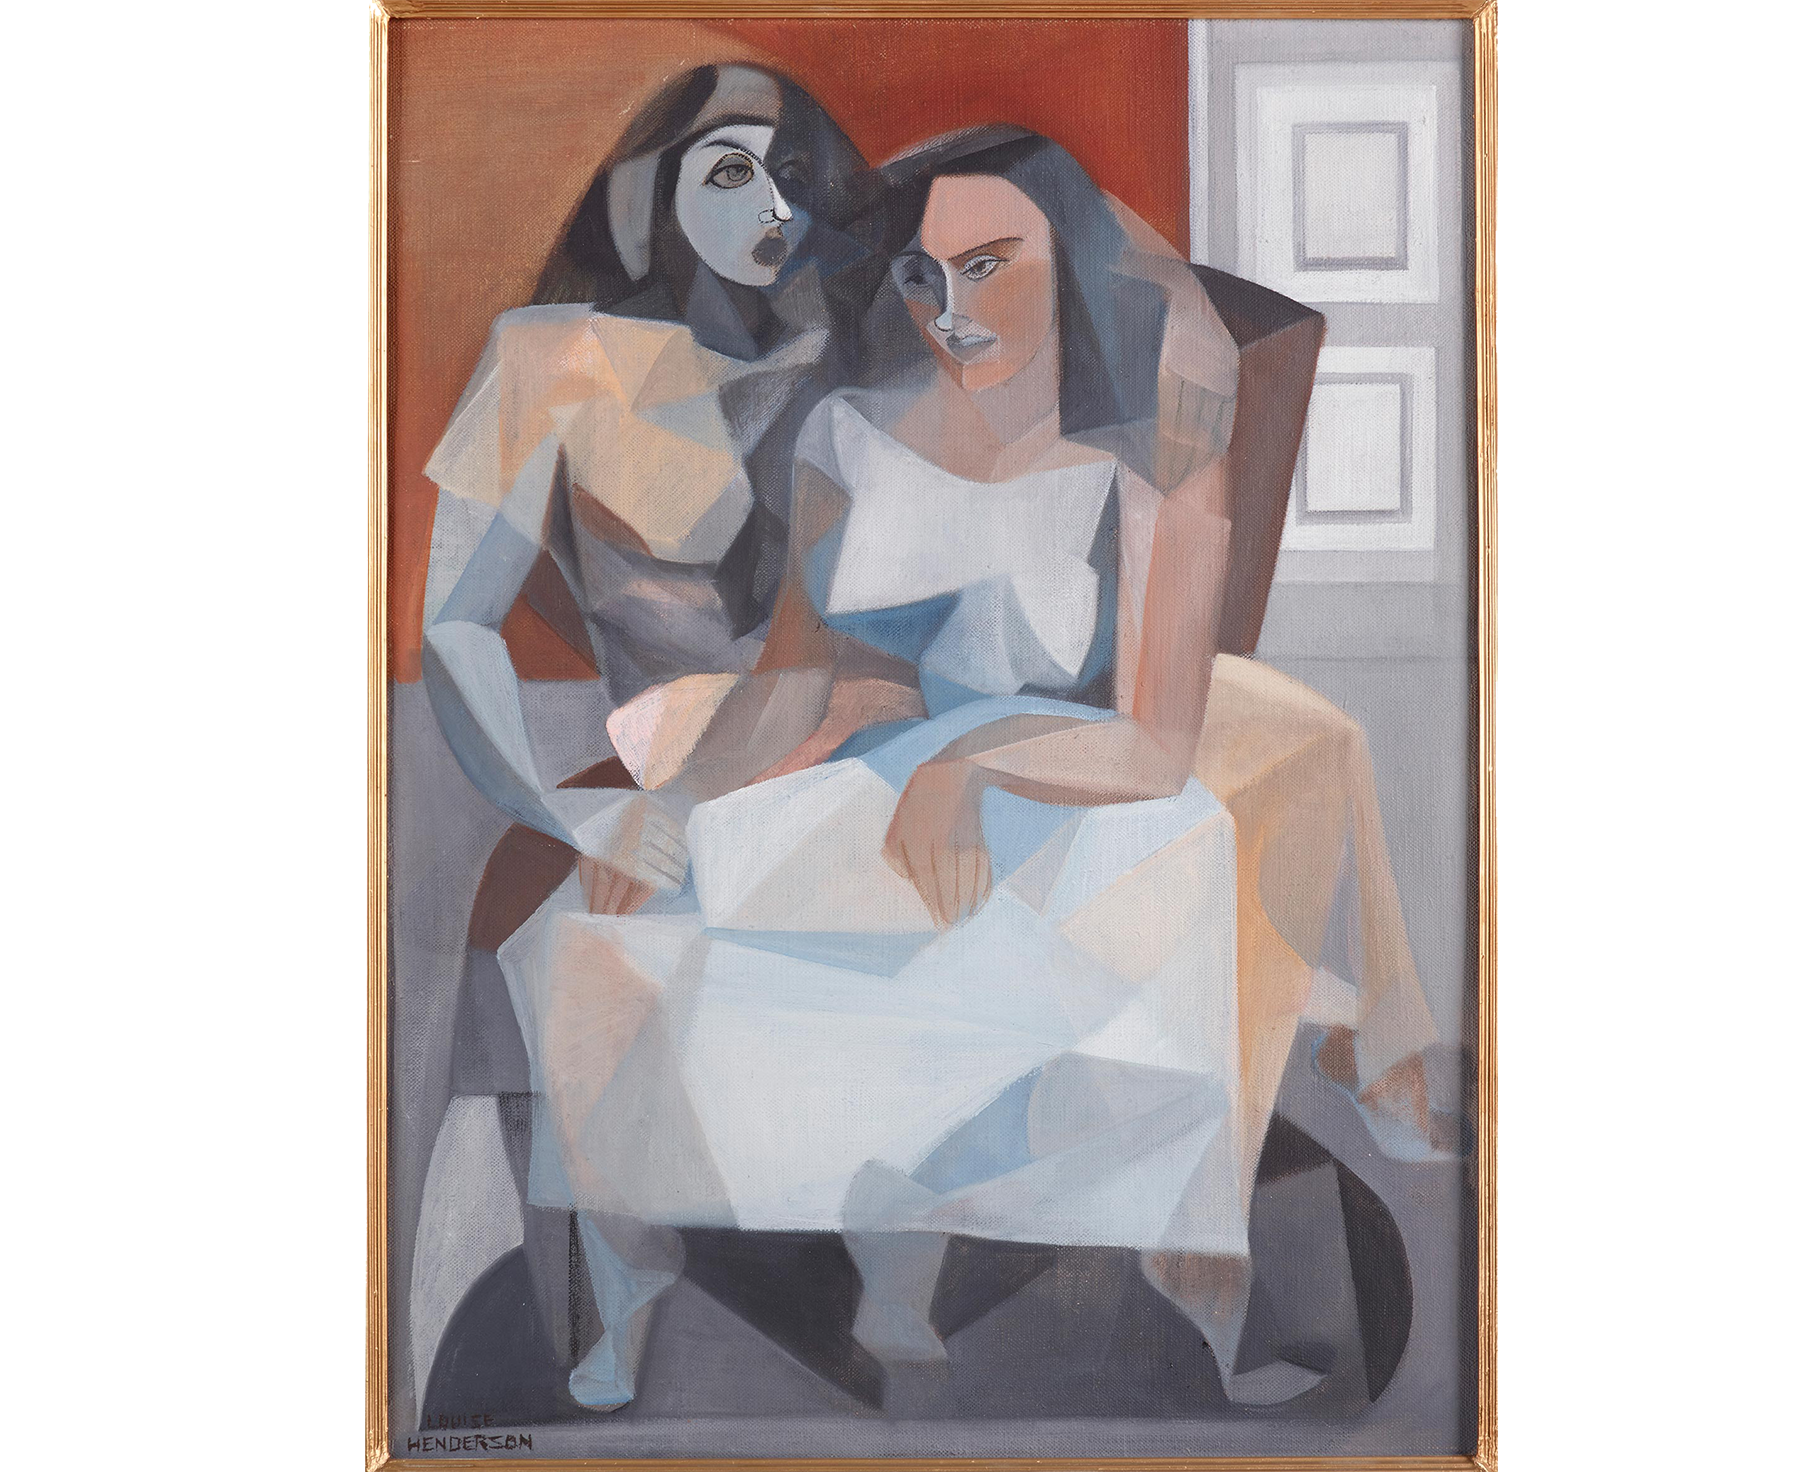 Oil painting of two figures